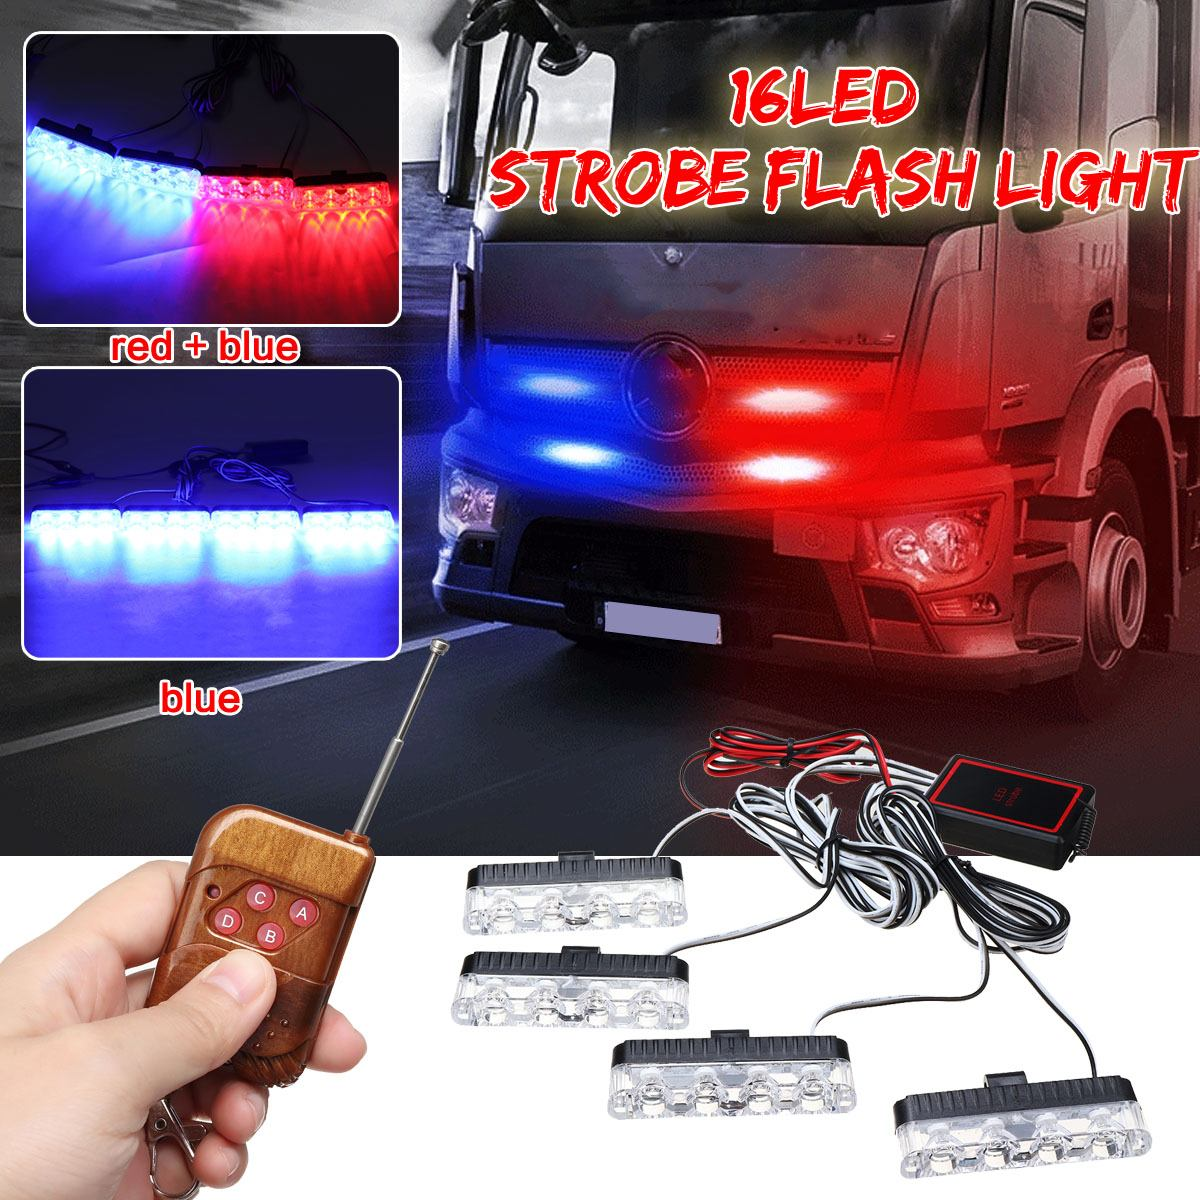 Cheap and beautiful light led car 16 leds in Light and Led